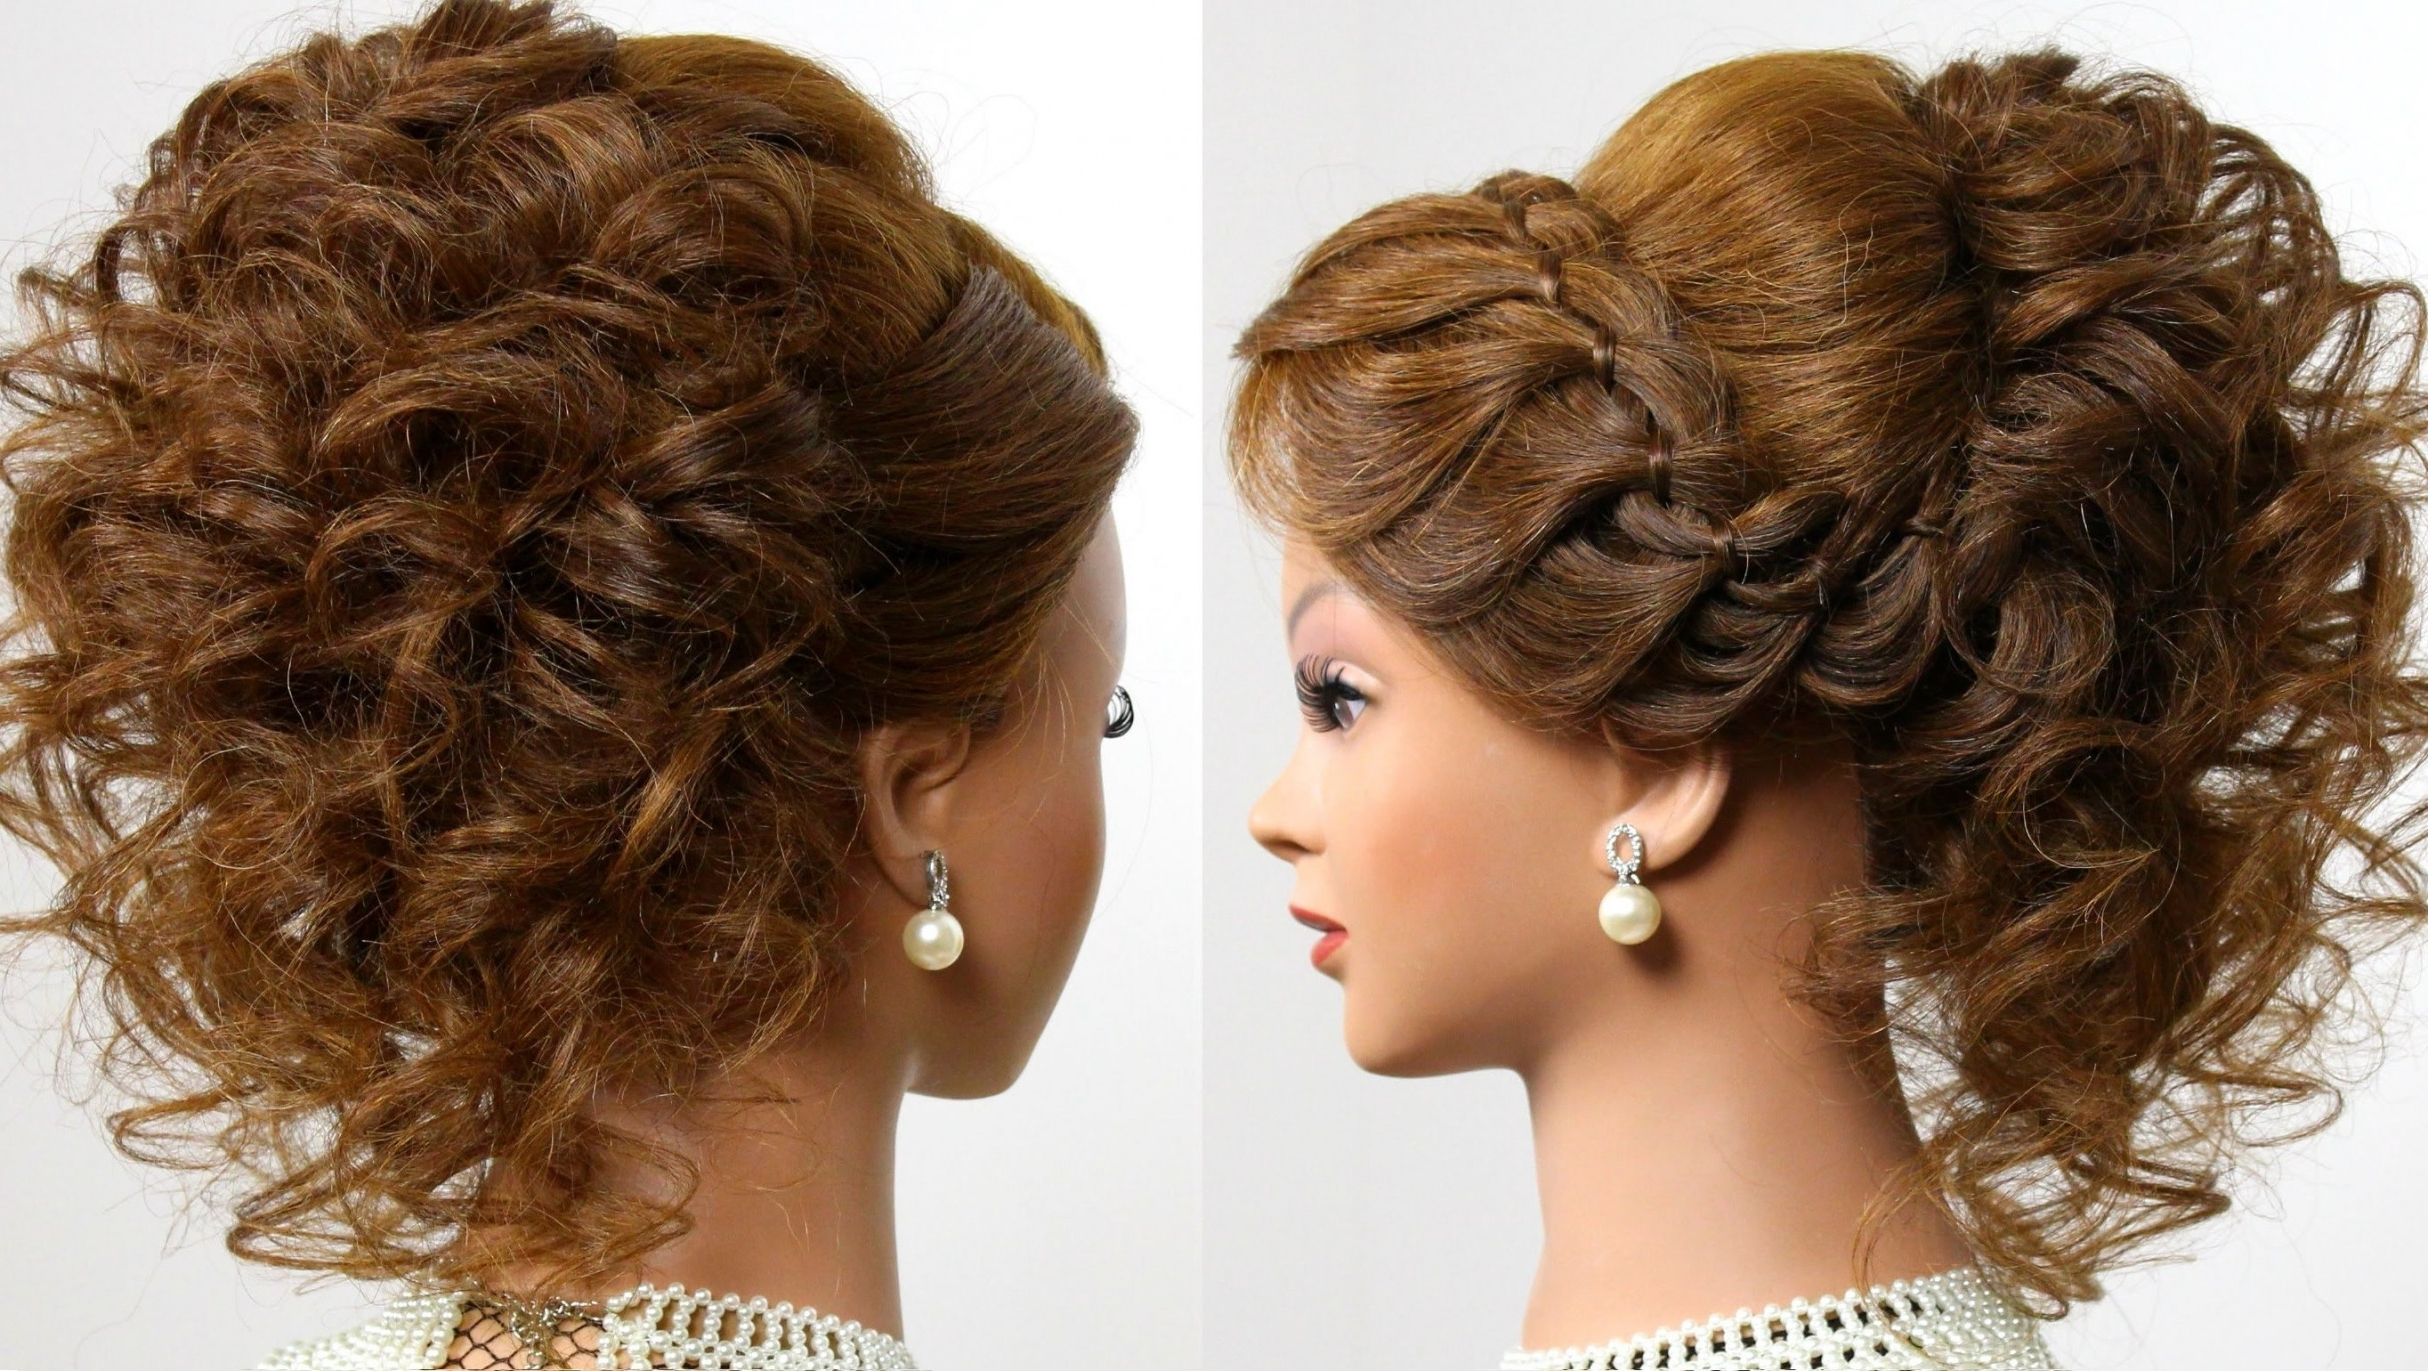 Fashionable Wedding Prom Hairstyles For Long Hair Tutorial Pertaining To Curly Wedding Prom Hairstyle For Long Hair Sensational Romantic (View 11 of 15)